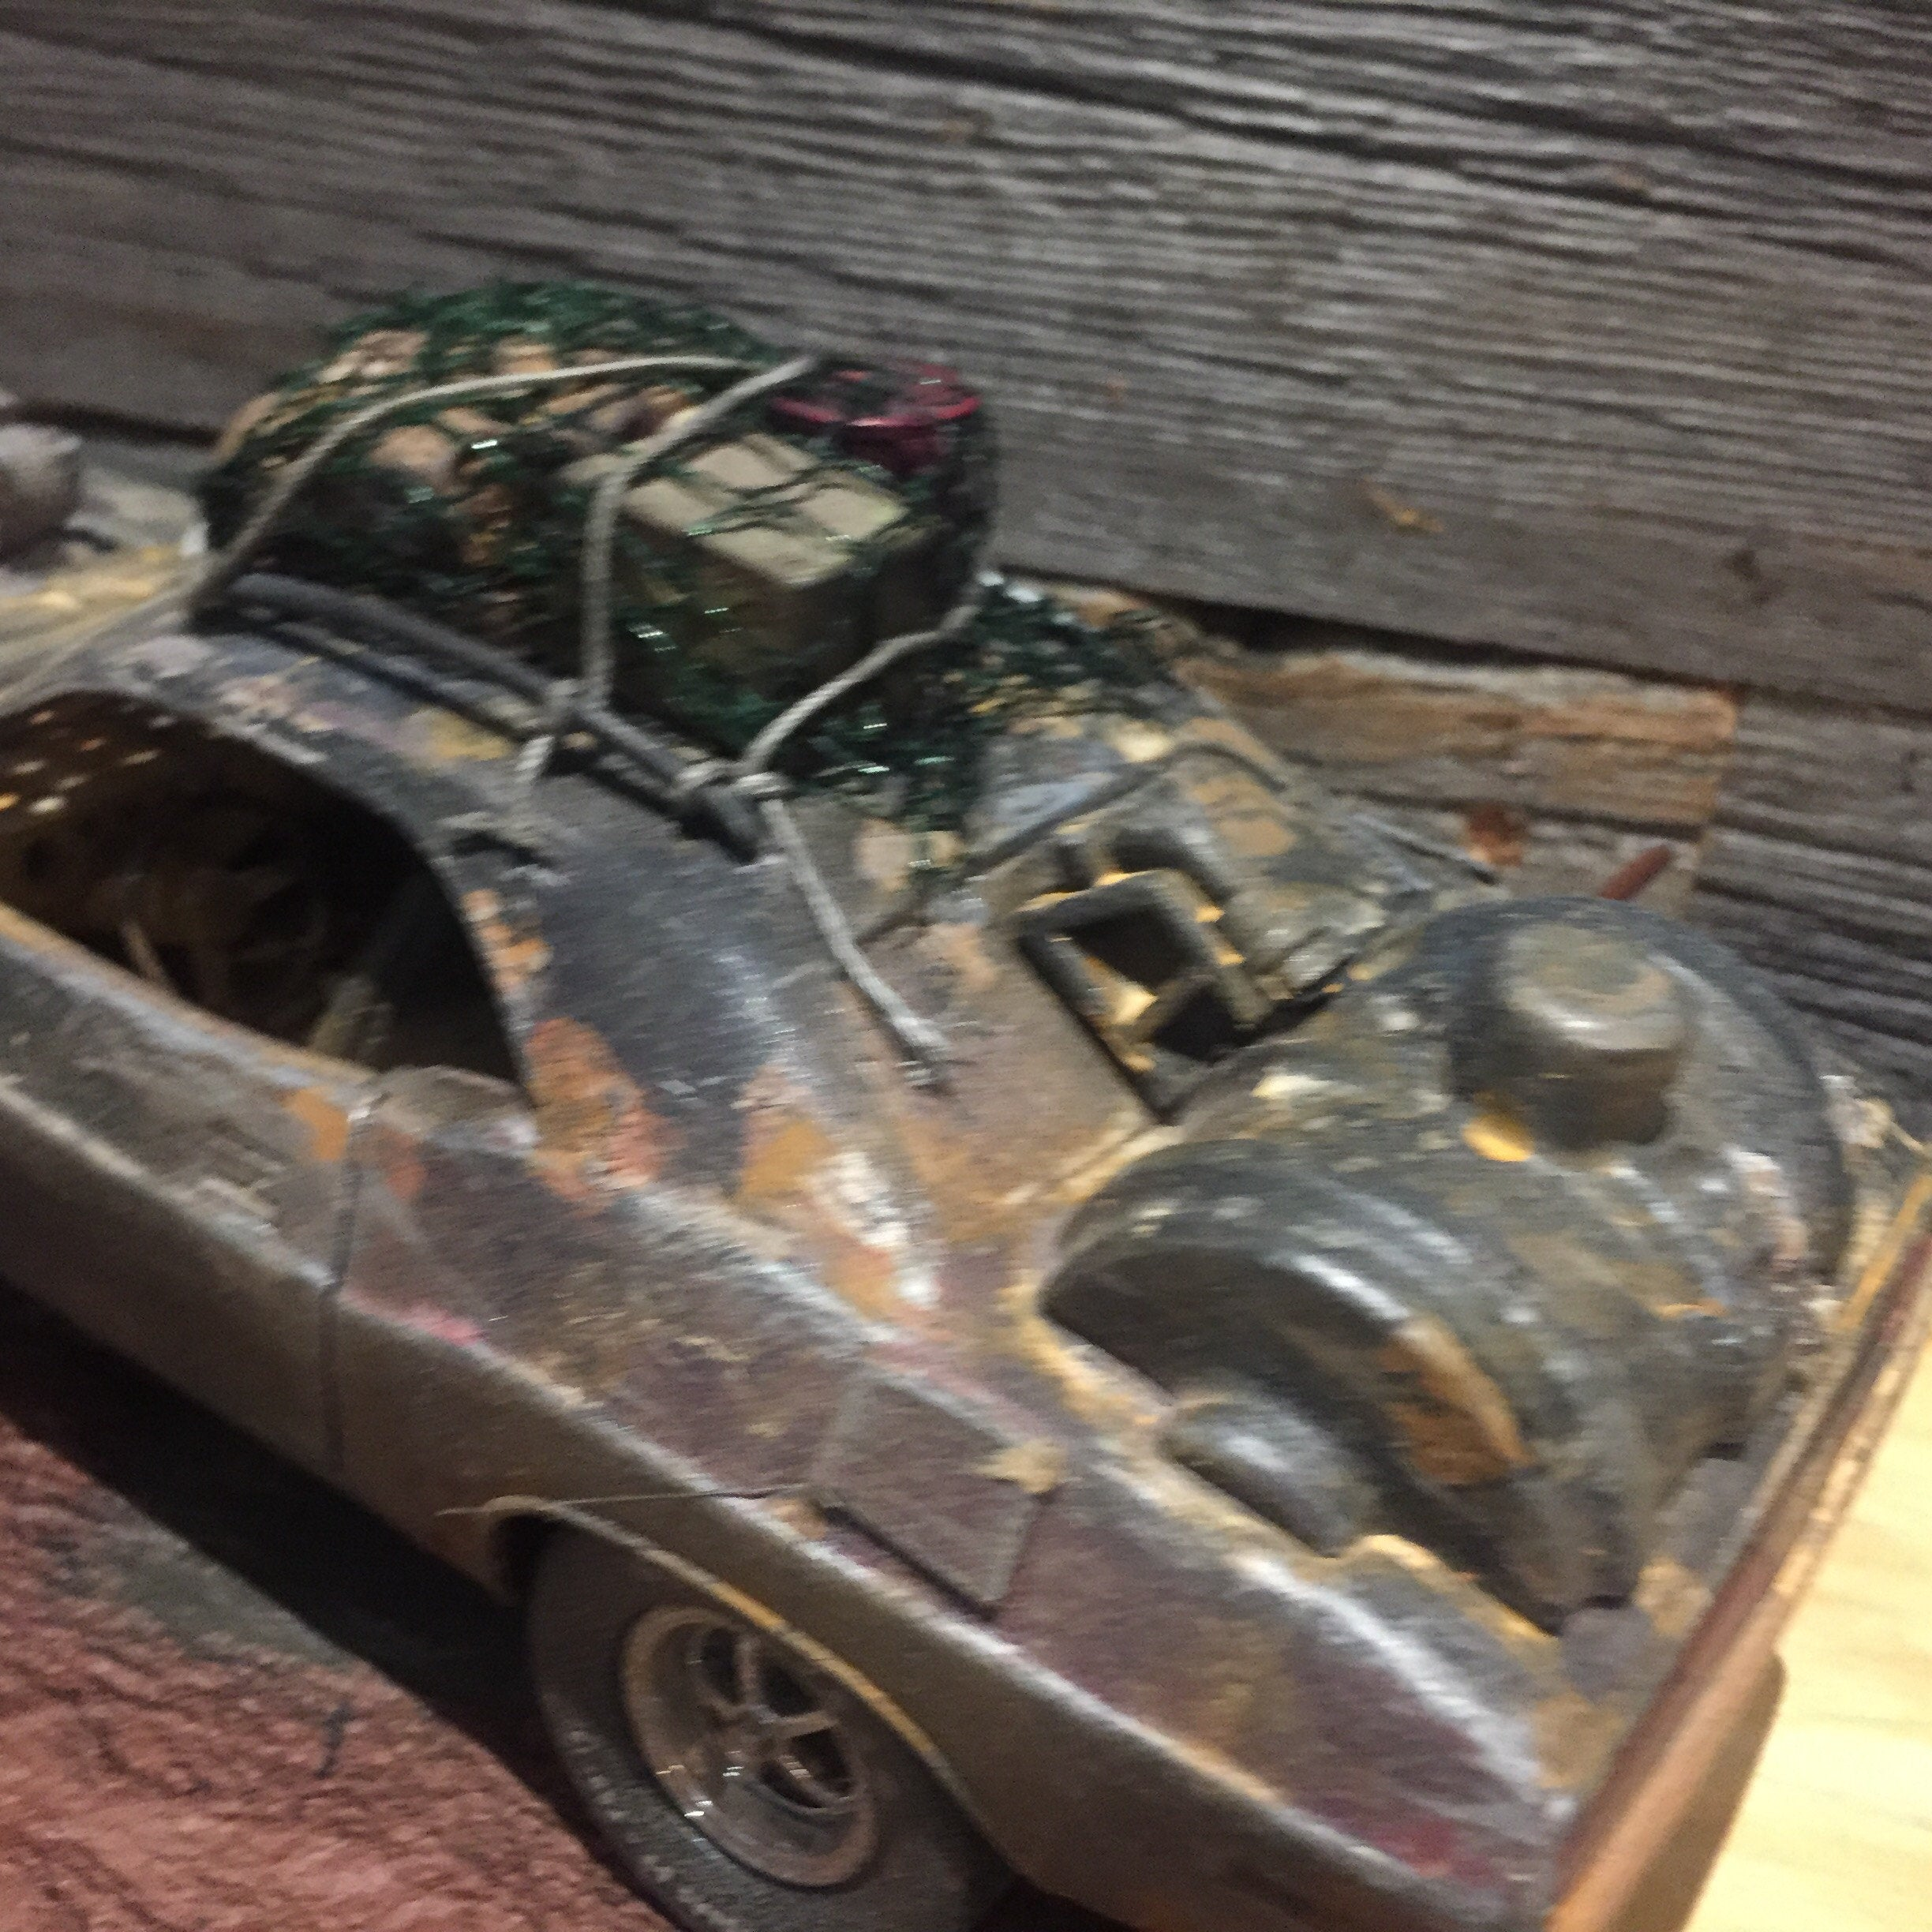 1970 Challenger Custom Vehicle wasteland warrior diorama Kit bash Gi joe